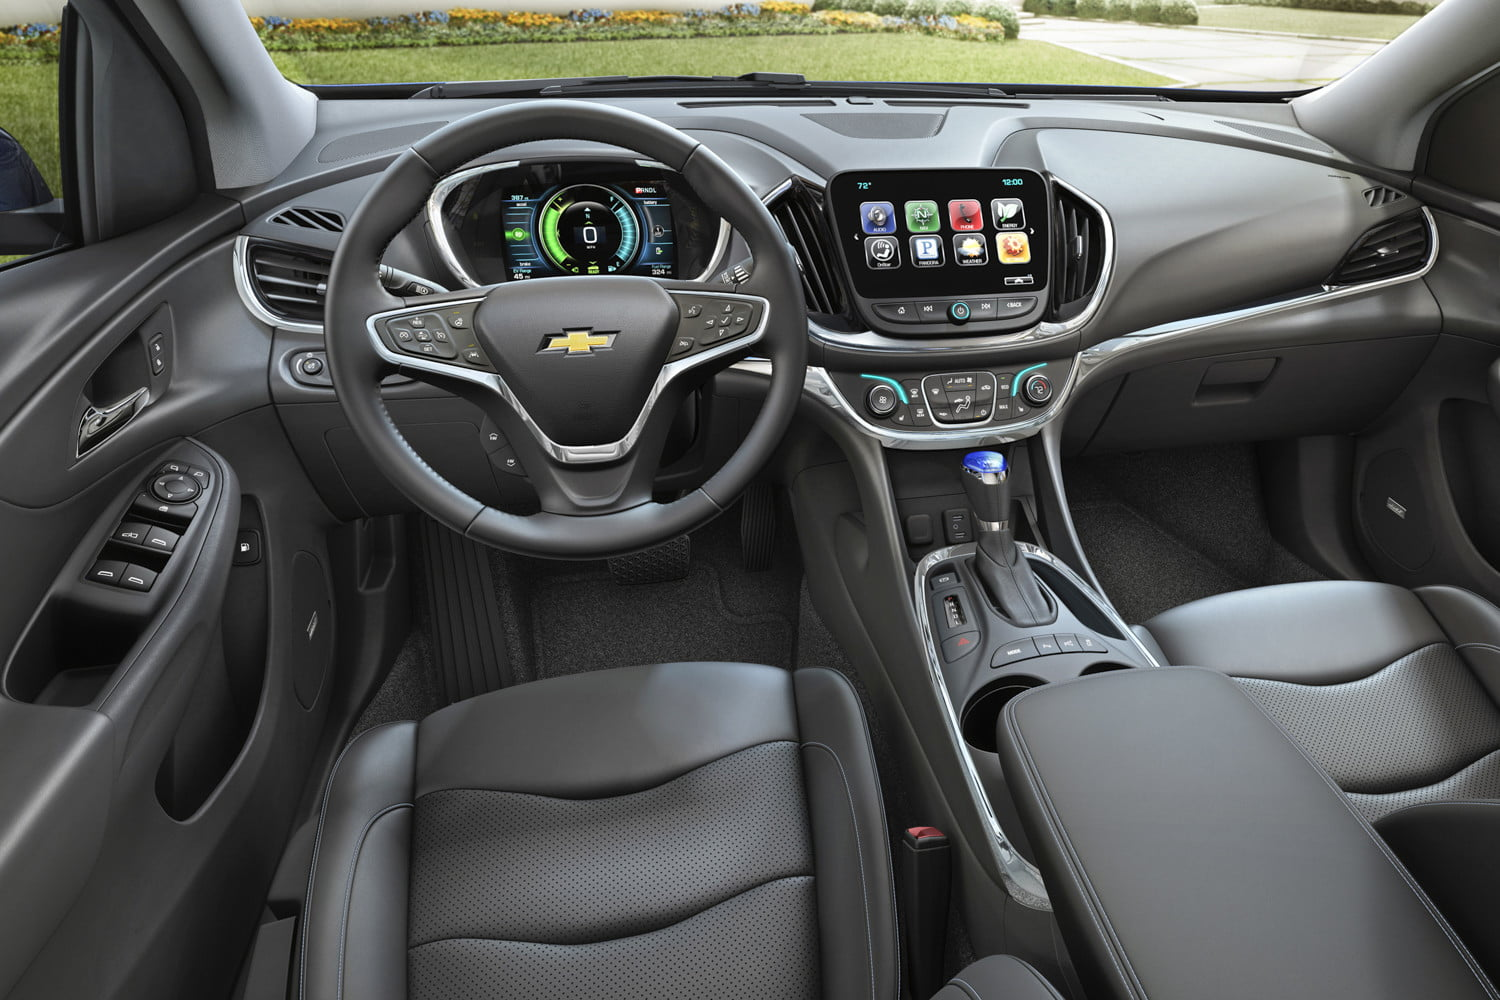 2018 Chevrolet Volt Tech